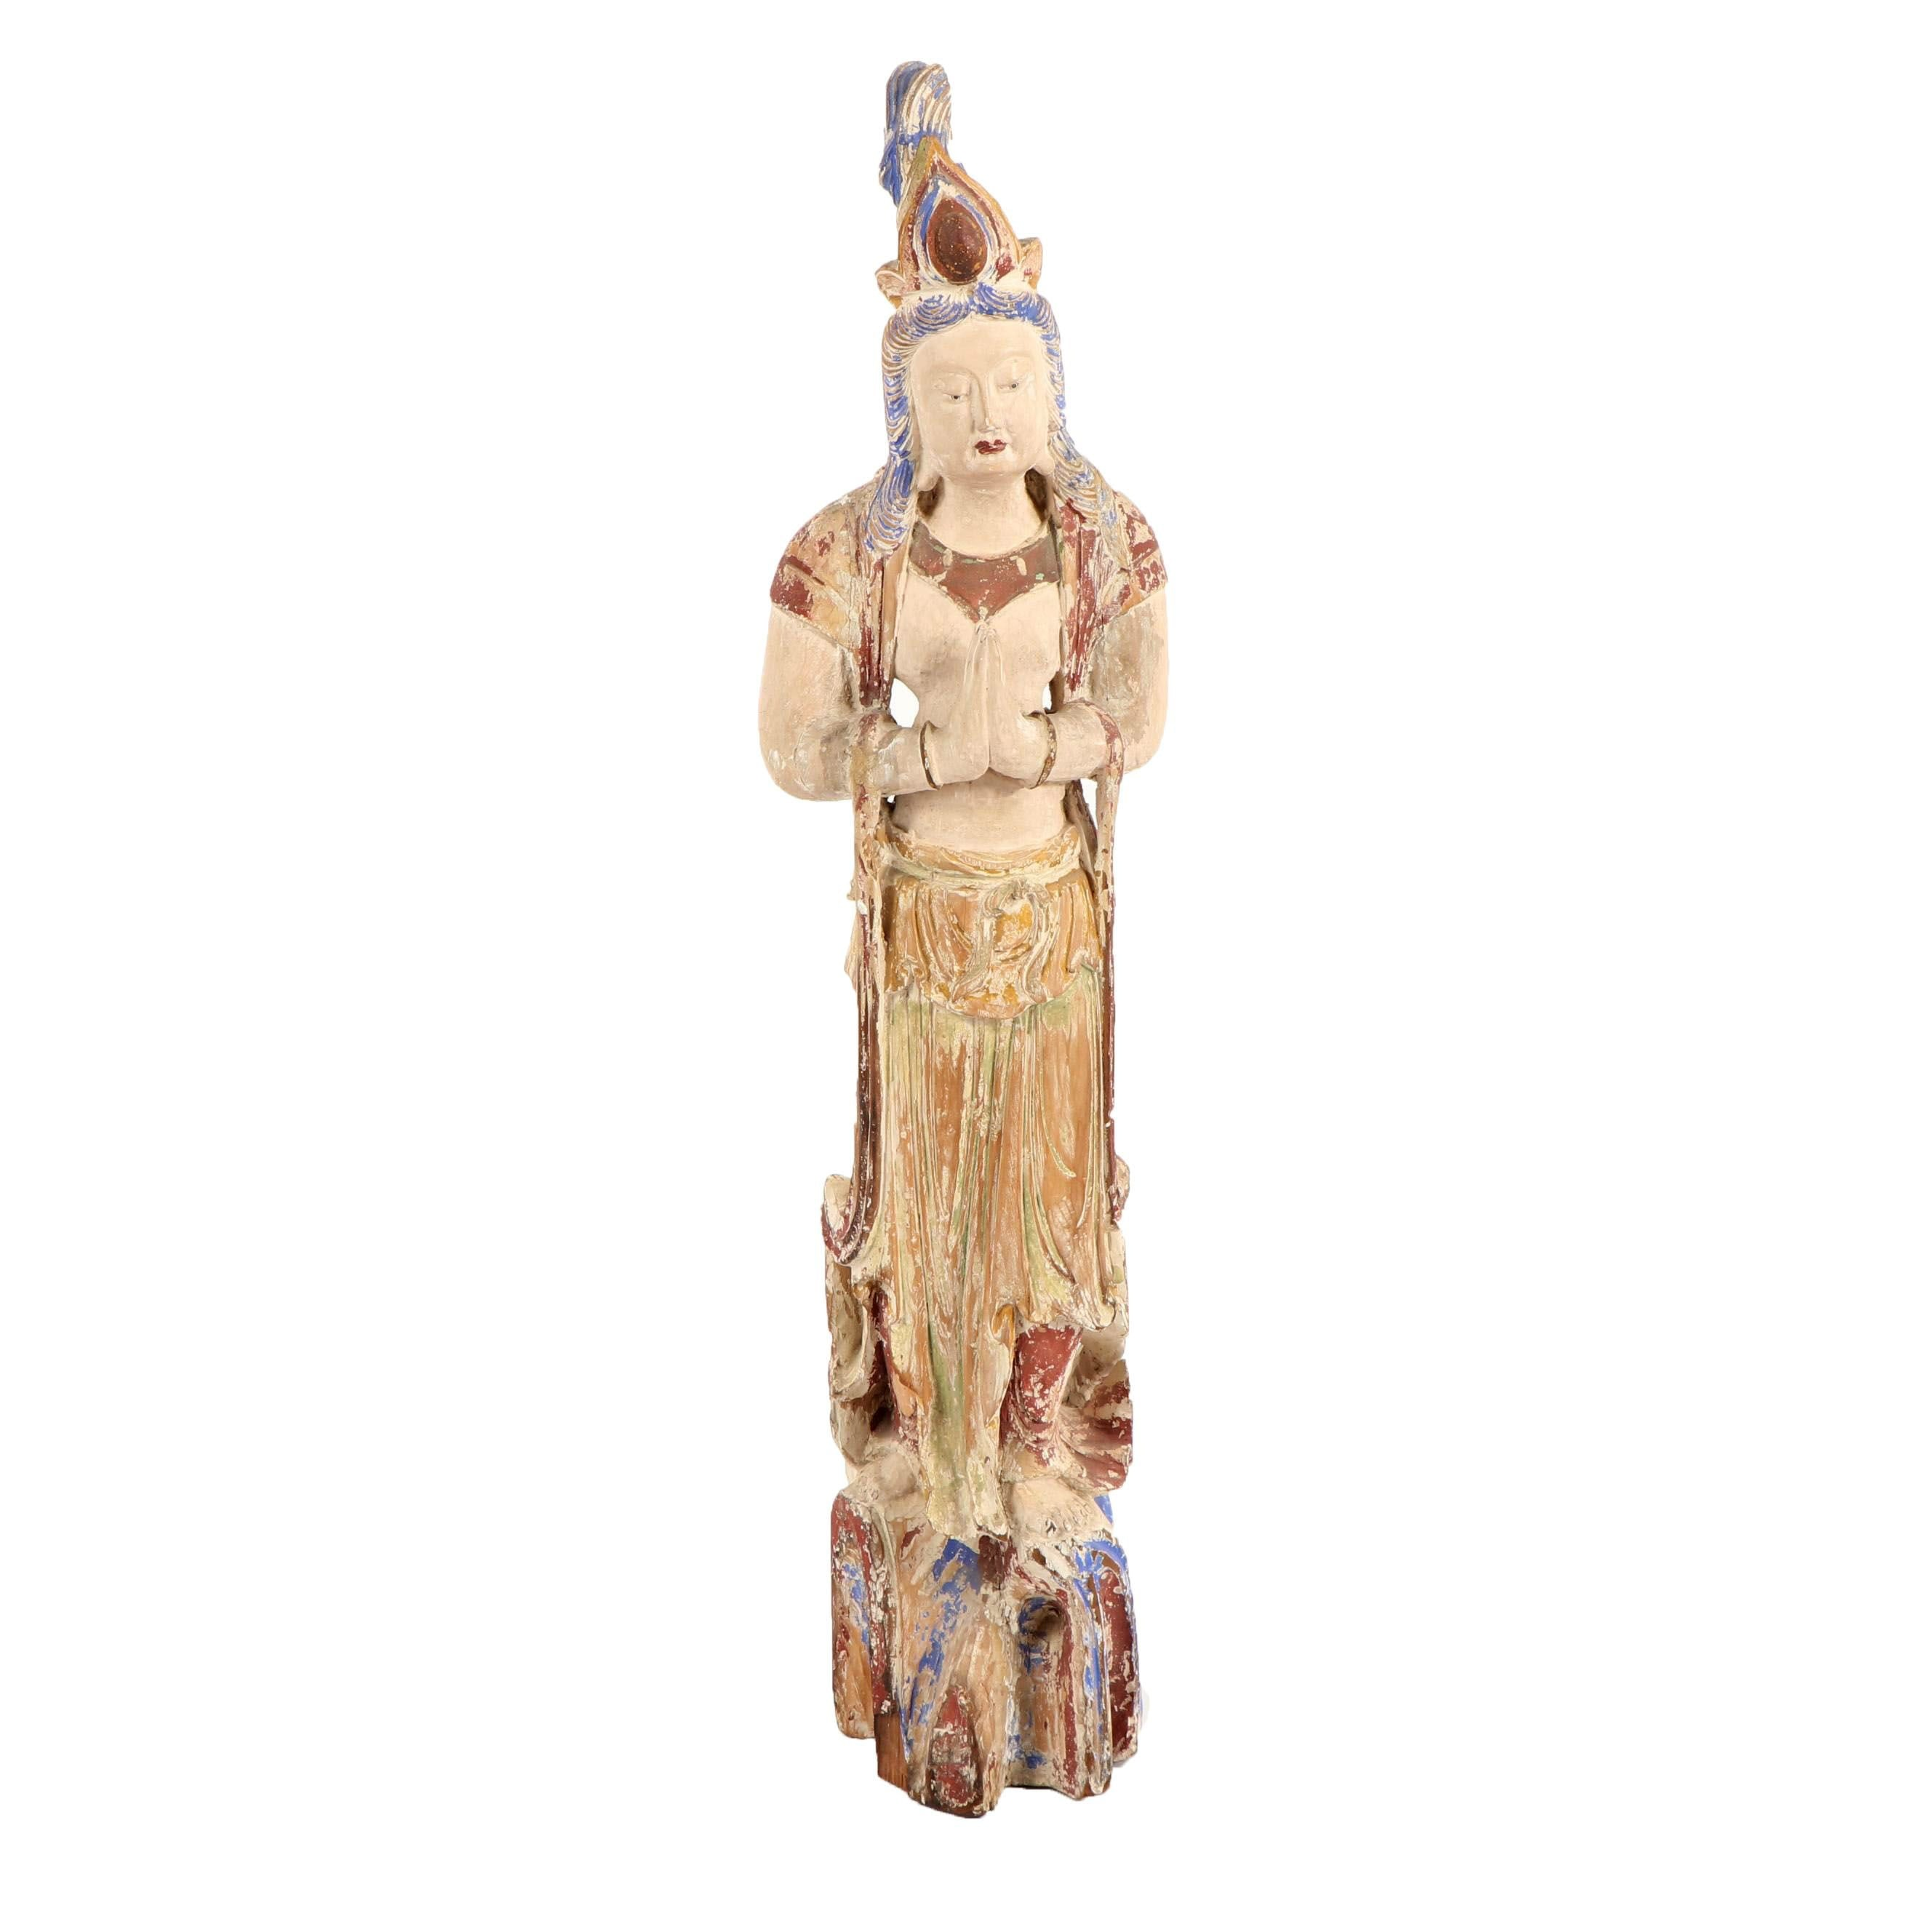 Antique Chinese Polychrome Wood Guanyin Sculpture